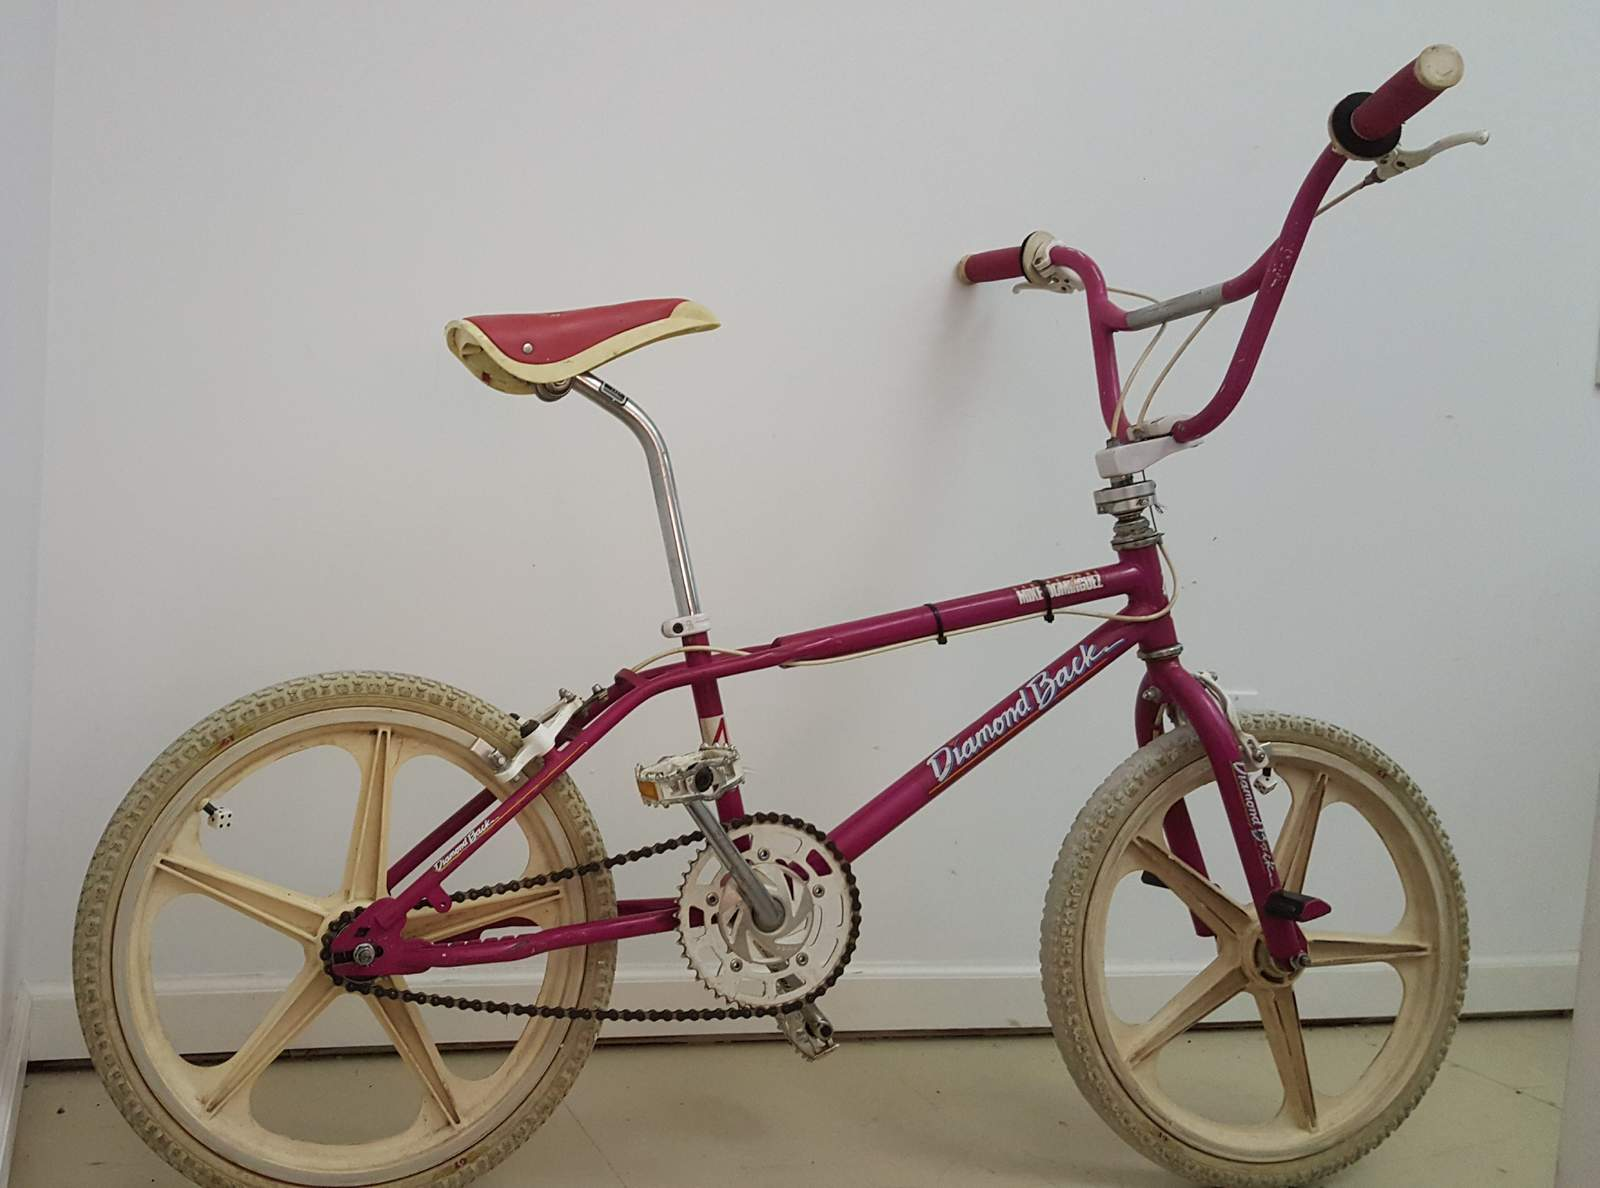 http://uploads.bmxmuseum.com/user-images/243997/20181005_1745565bb7e6423b.jpg